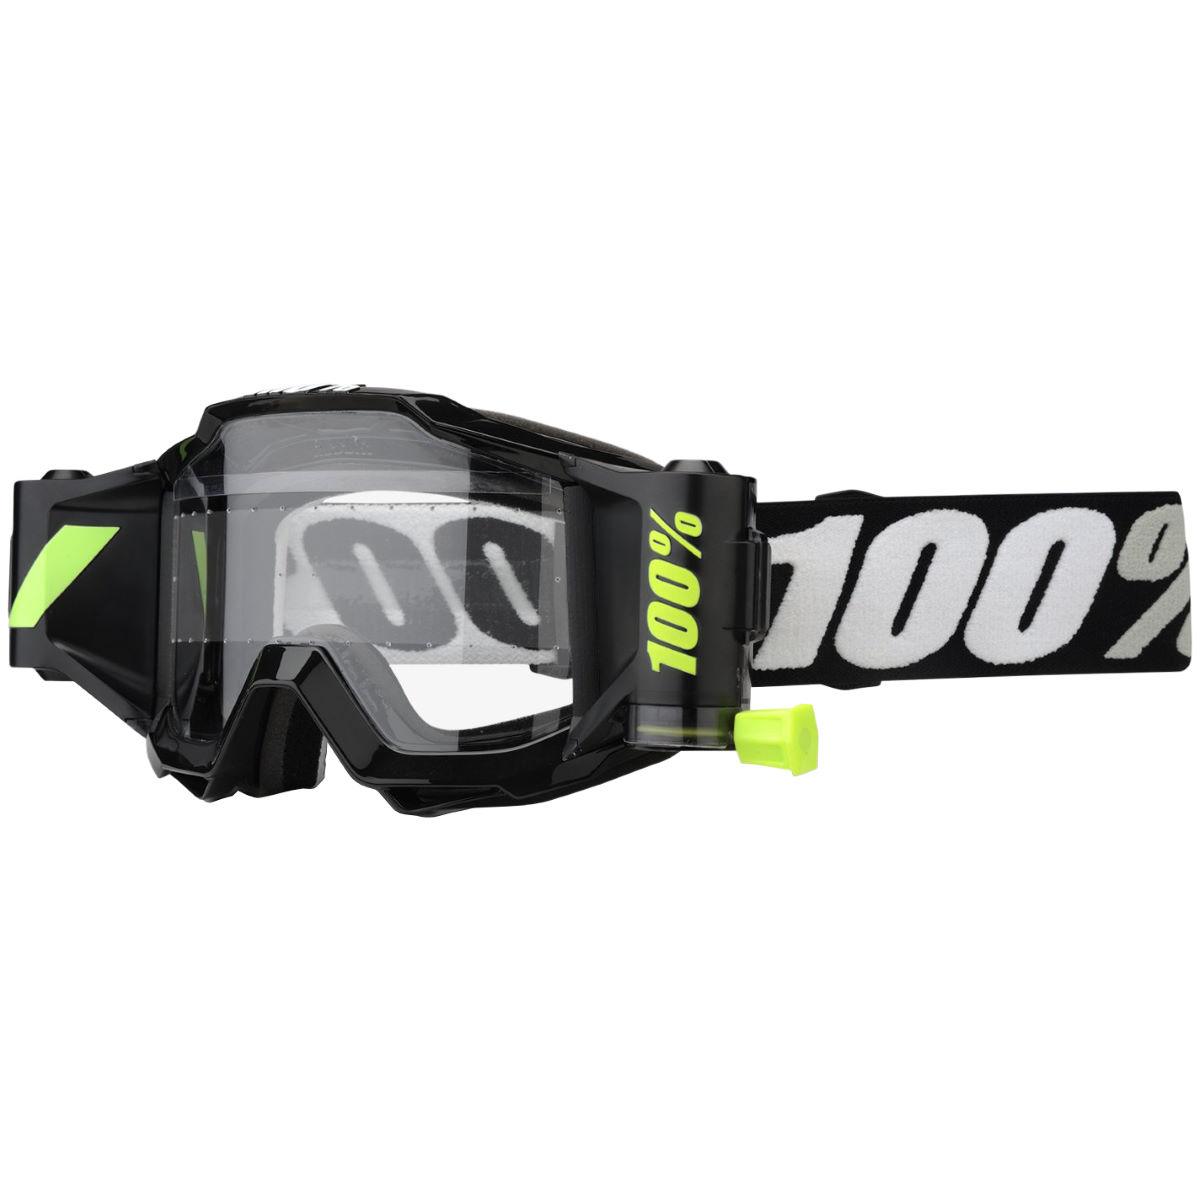 100% Accuri Goggle Forecast System   Cycling Goggles